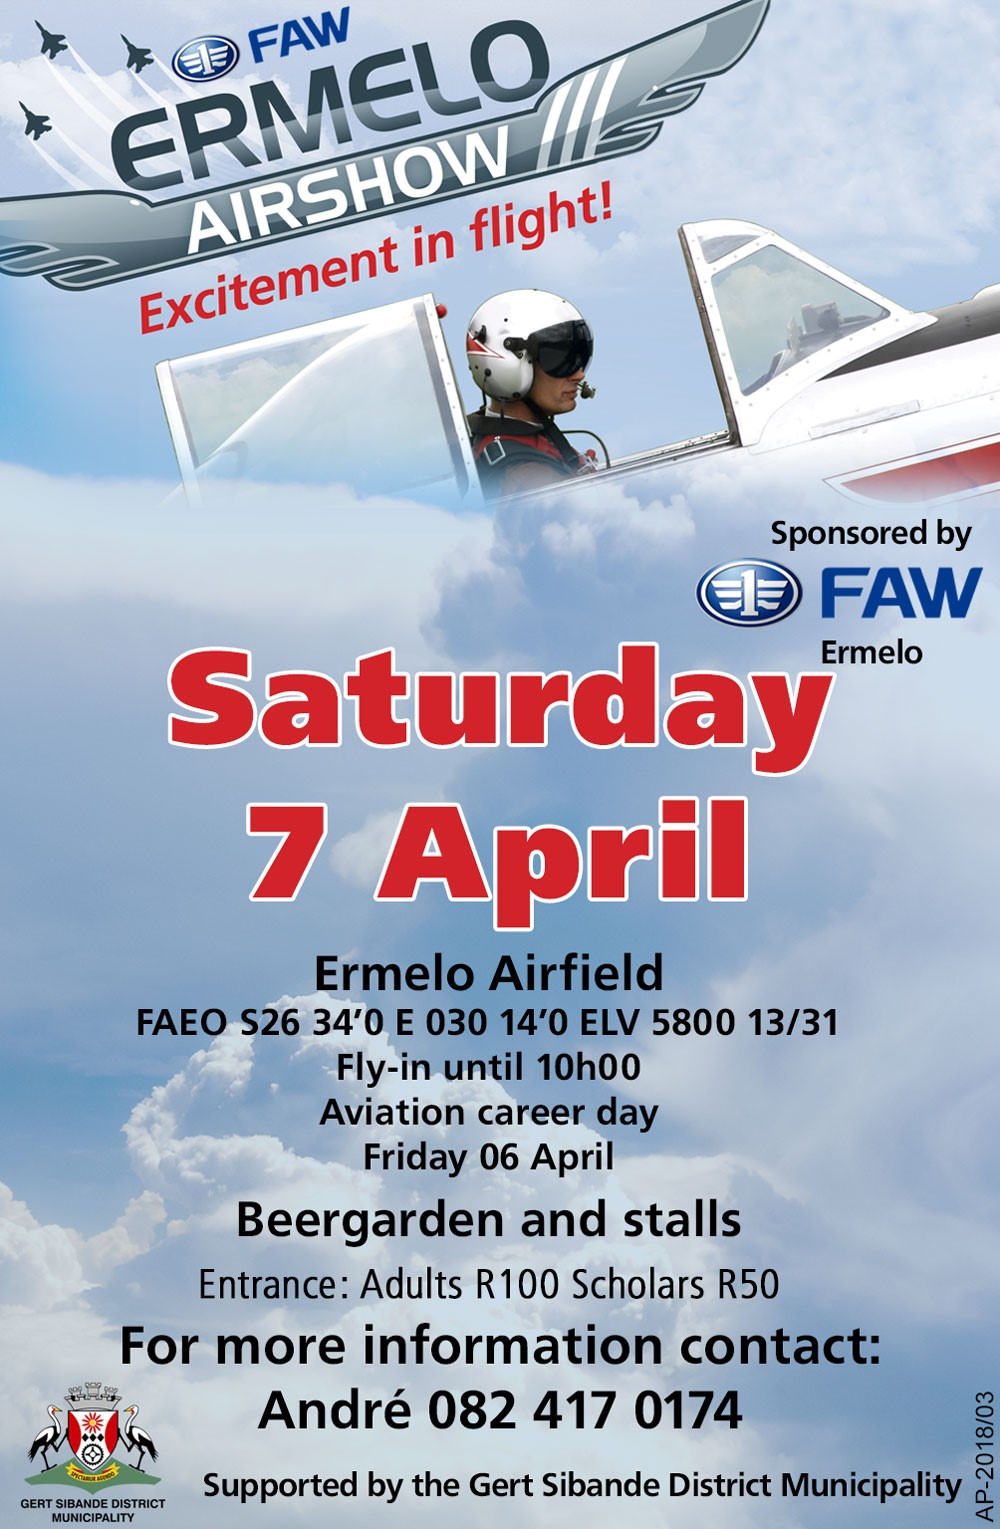 The FAW Ermelo Airshow 2018 – What to expect